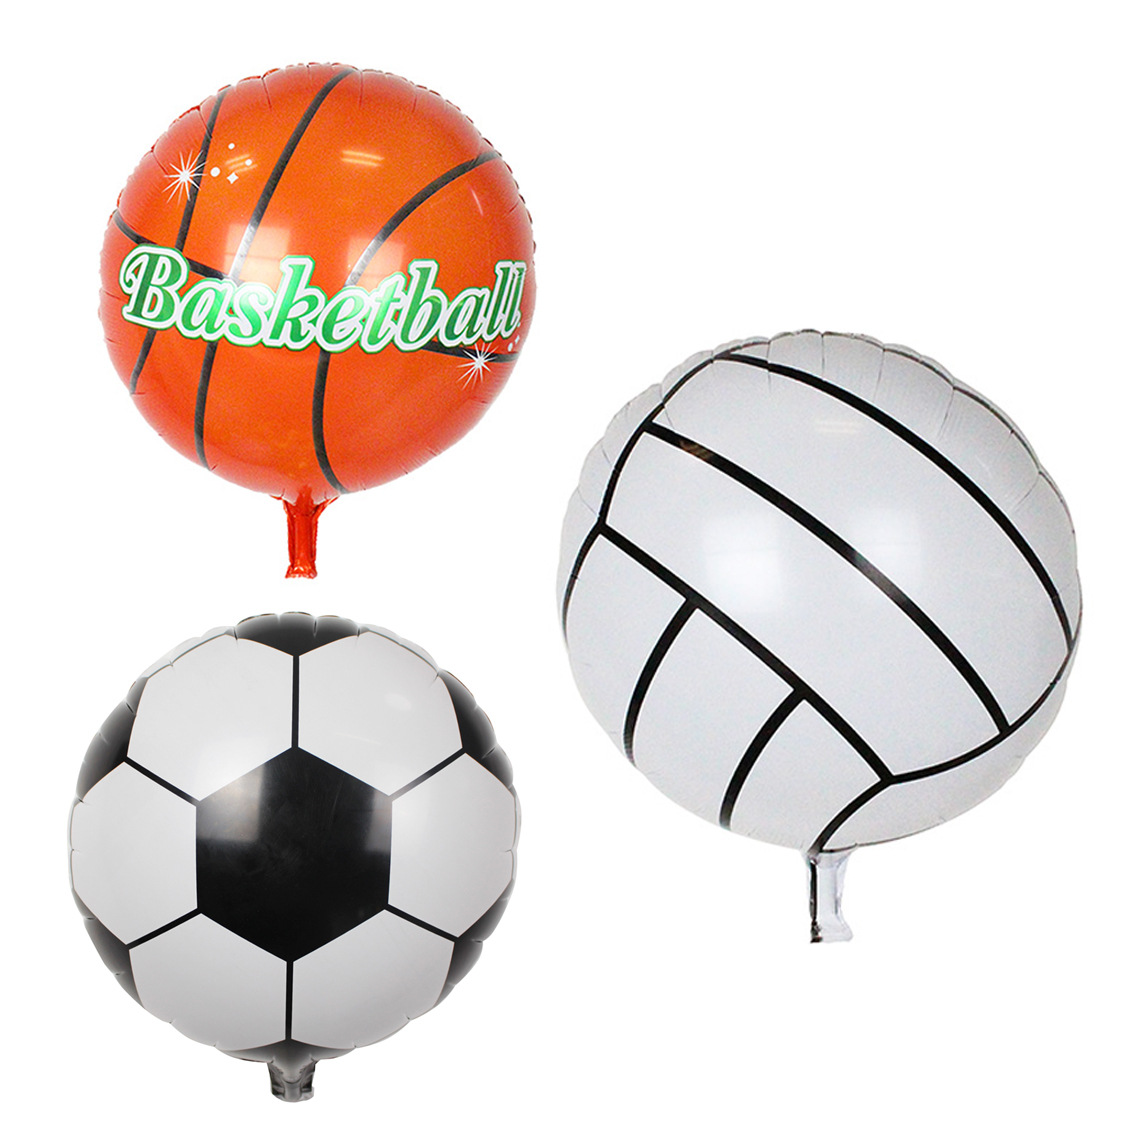 Volleyball Party Decorations Popular Volleyball Party Decorations Buy Cheap Volleyball Party